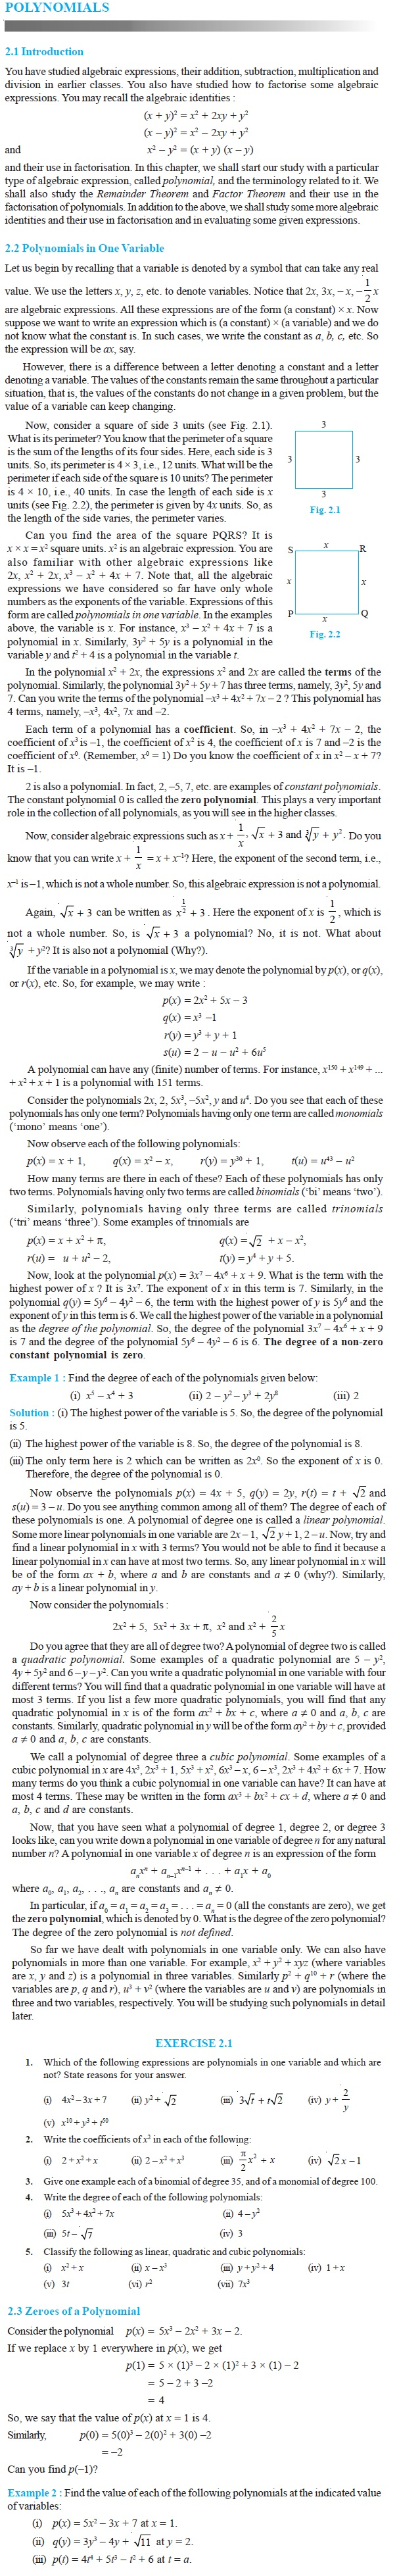 NCERT Class IX Maths Chapter 2 Polynomials